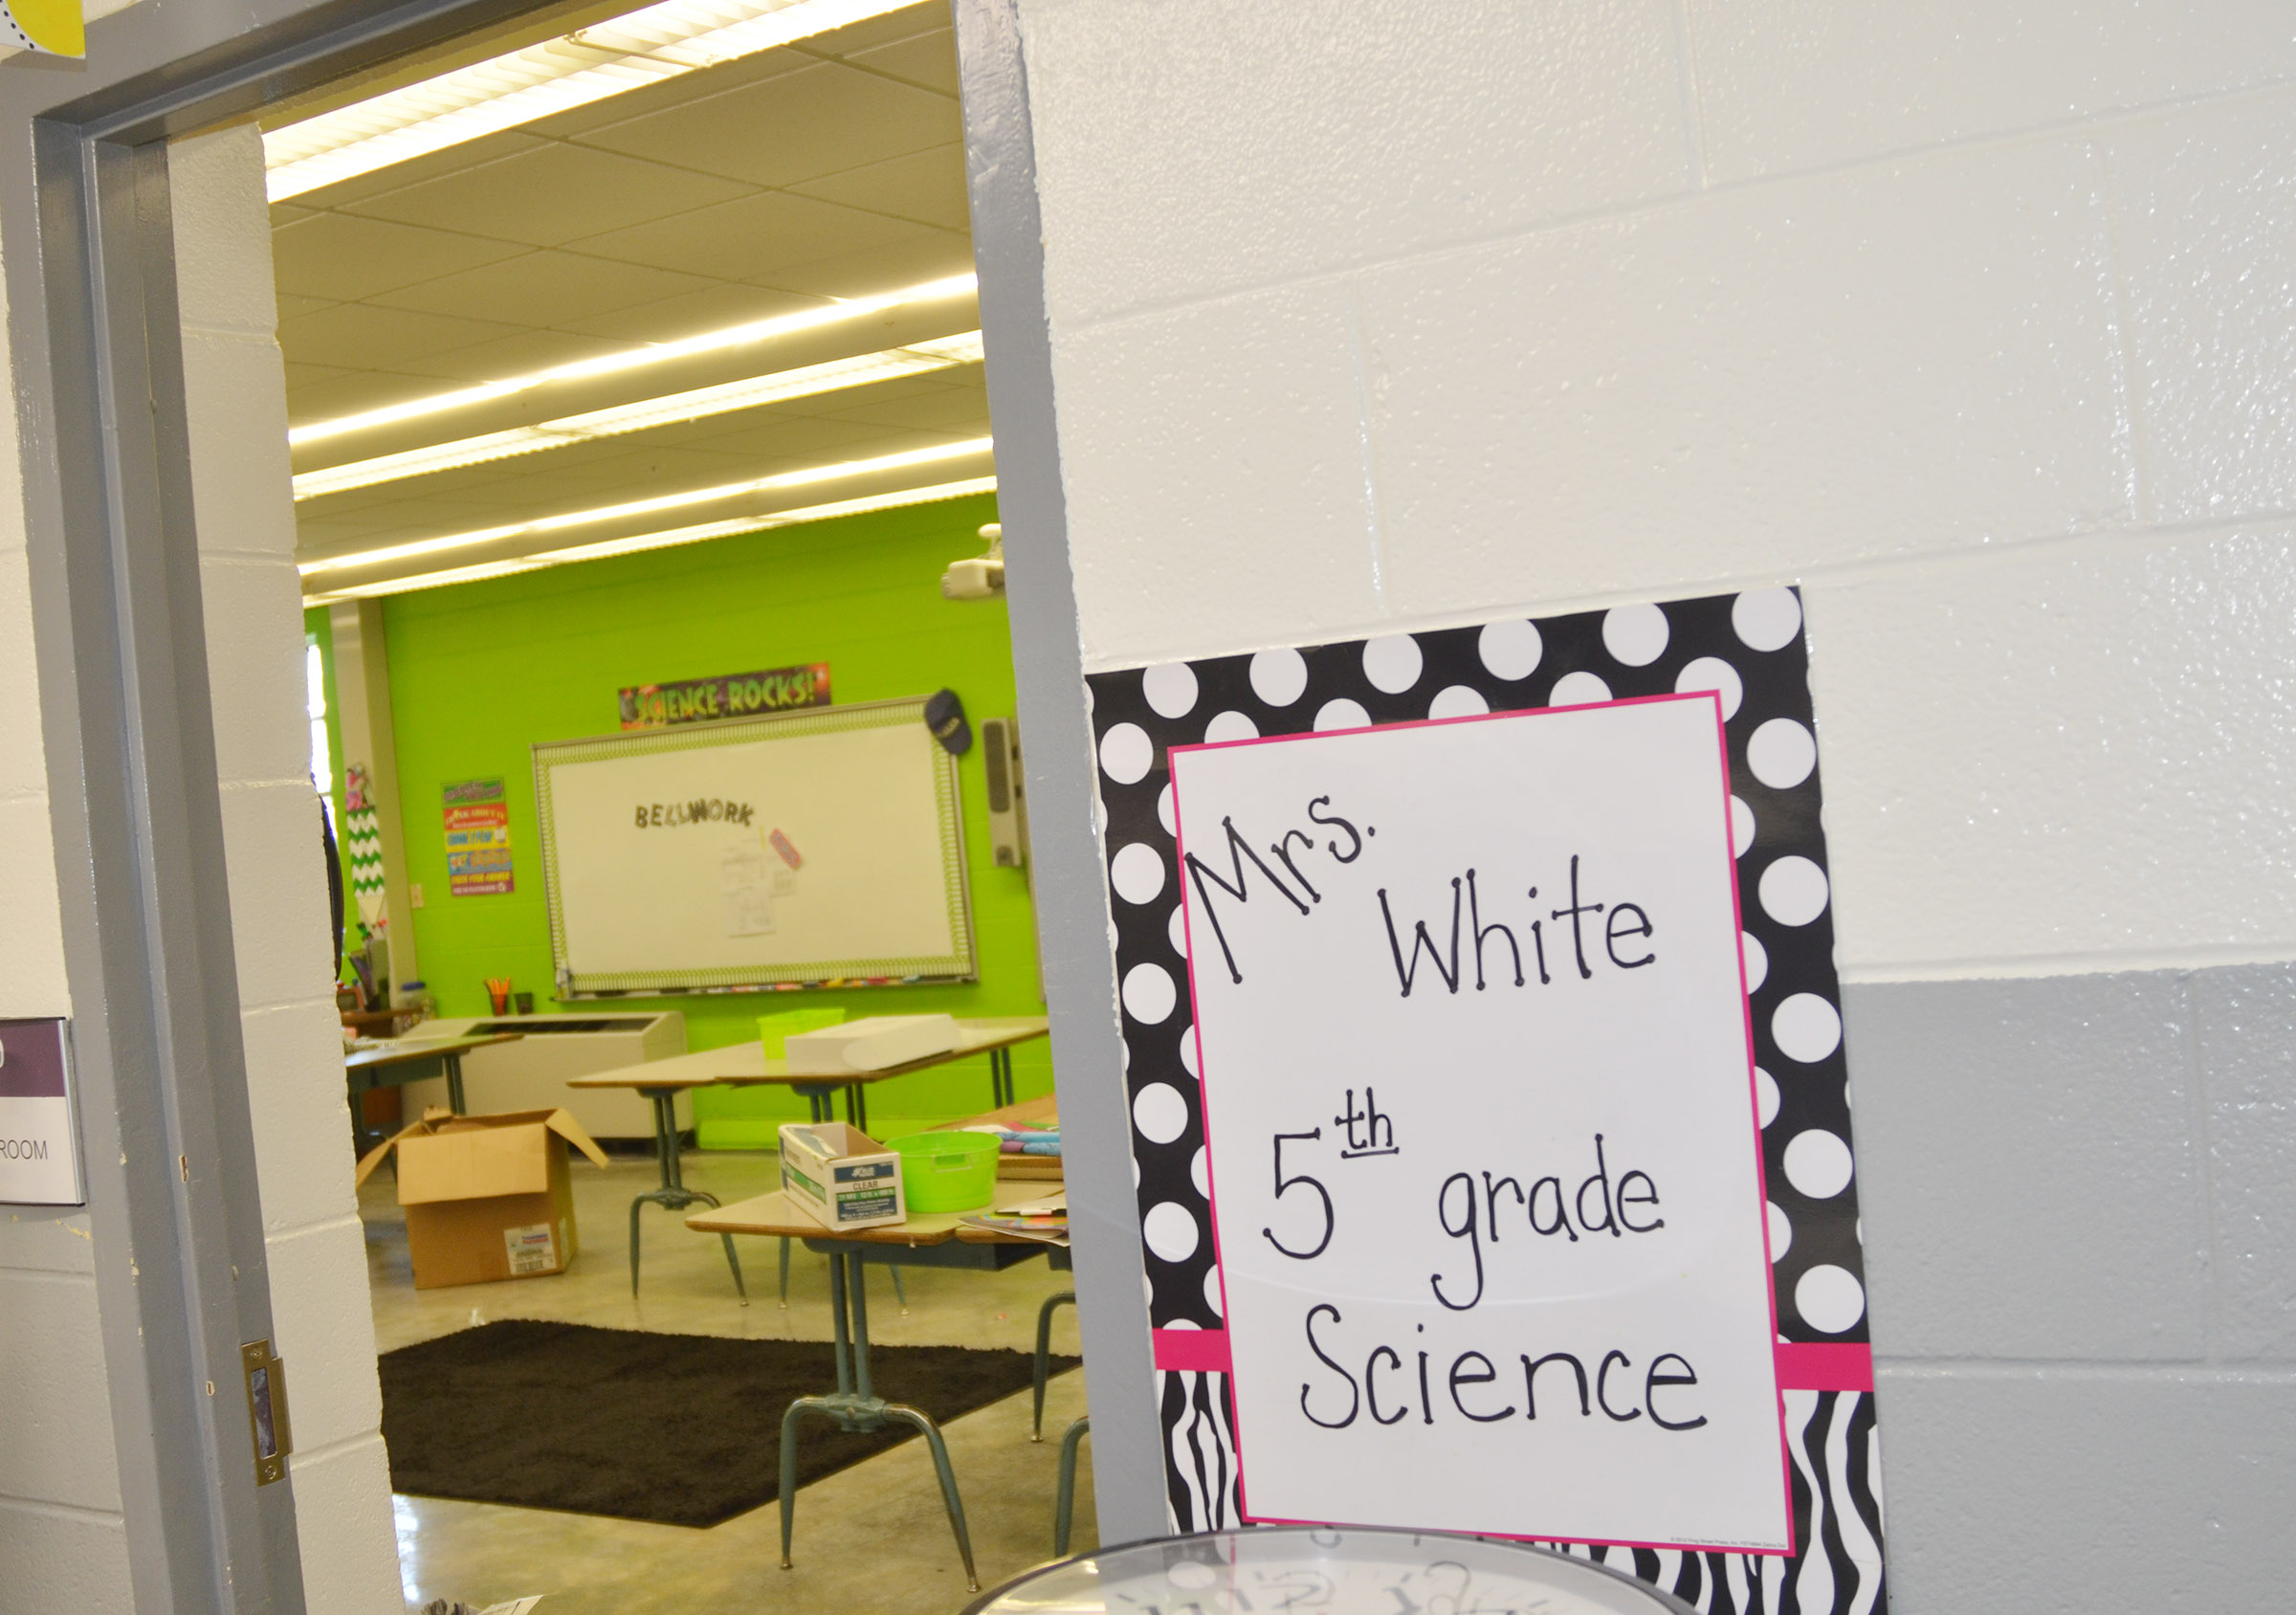 CES teacher Donna White prepares her classroom for the new school year.